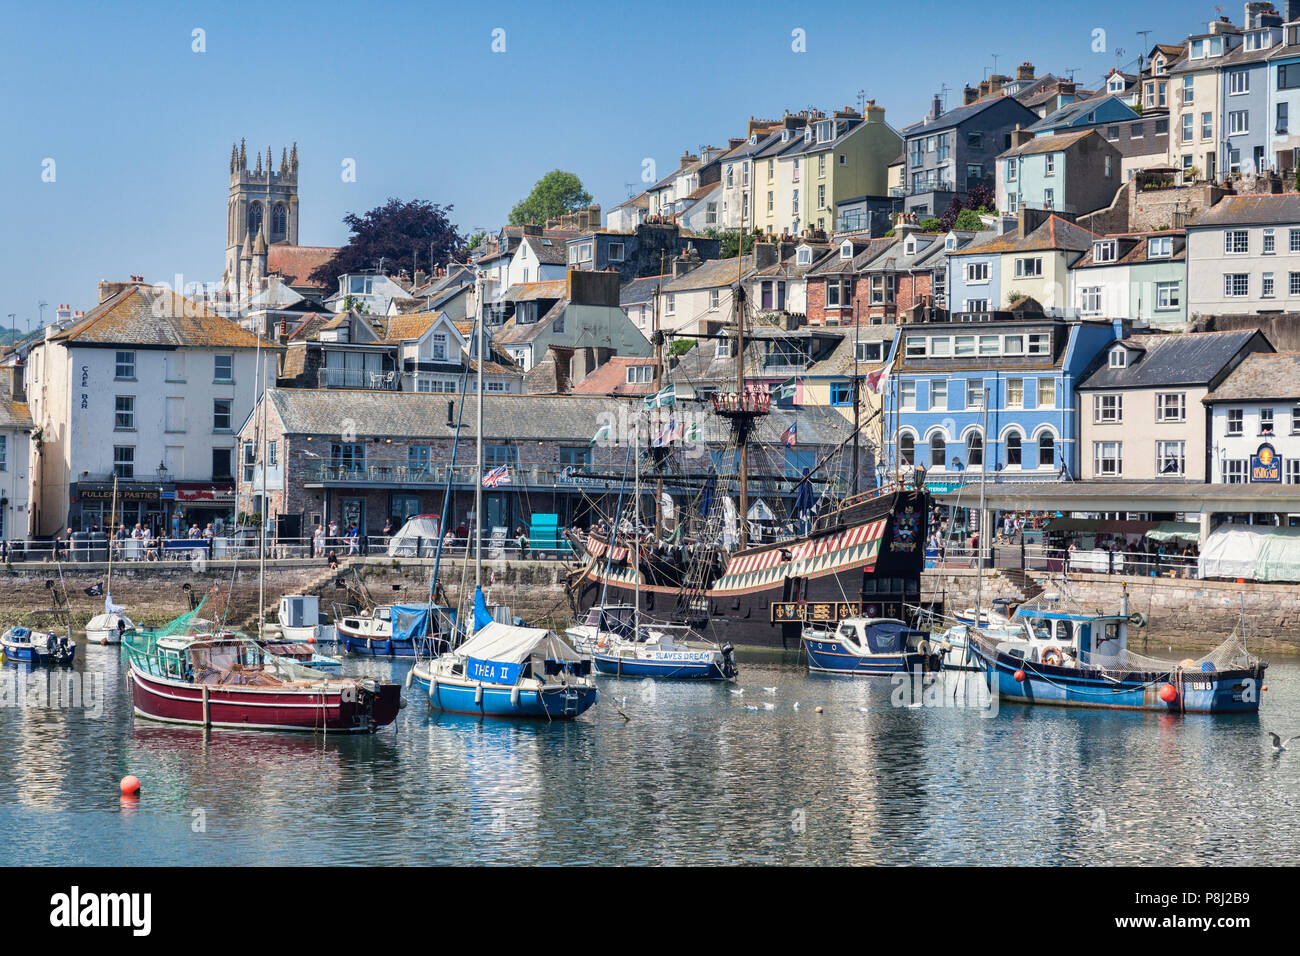 23 May 2018: Brixham, Devon, UK - The harbour with the replica Golden Hind on a fine spring day. - Stock Image